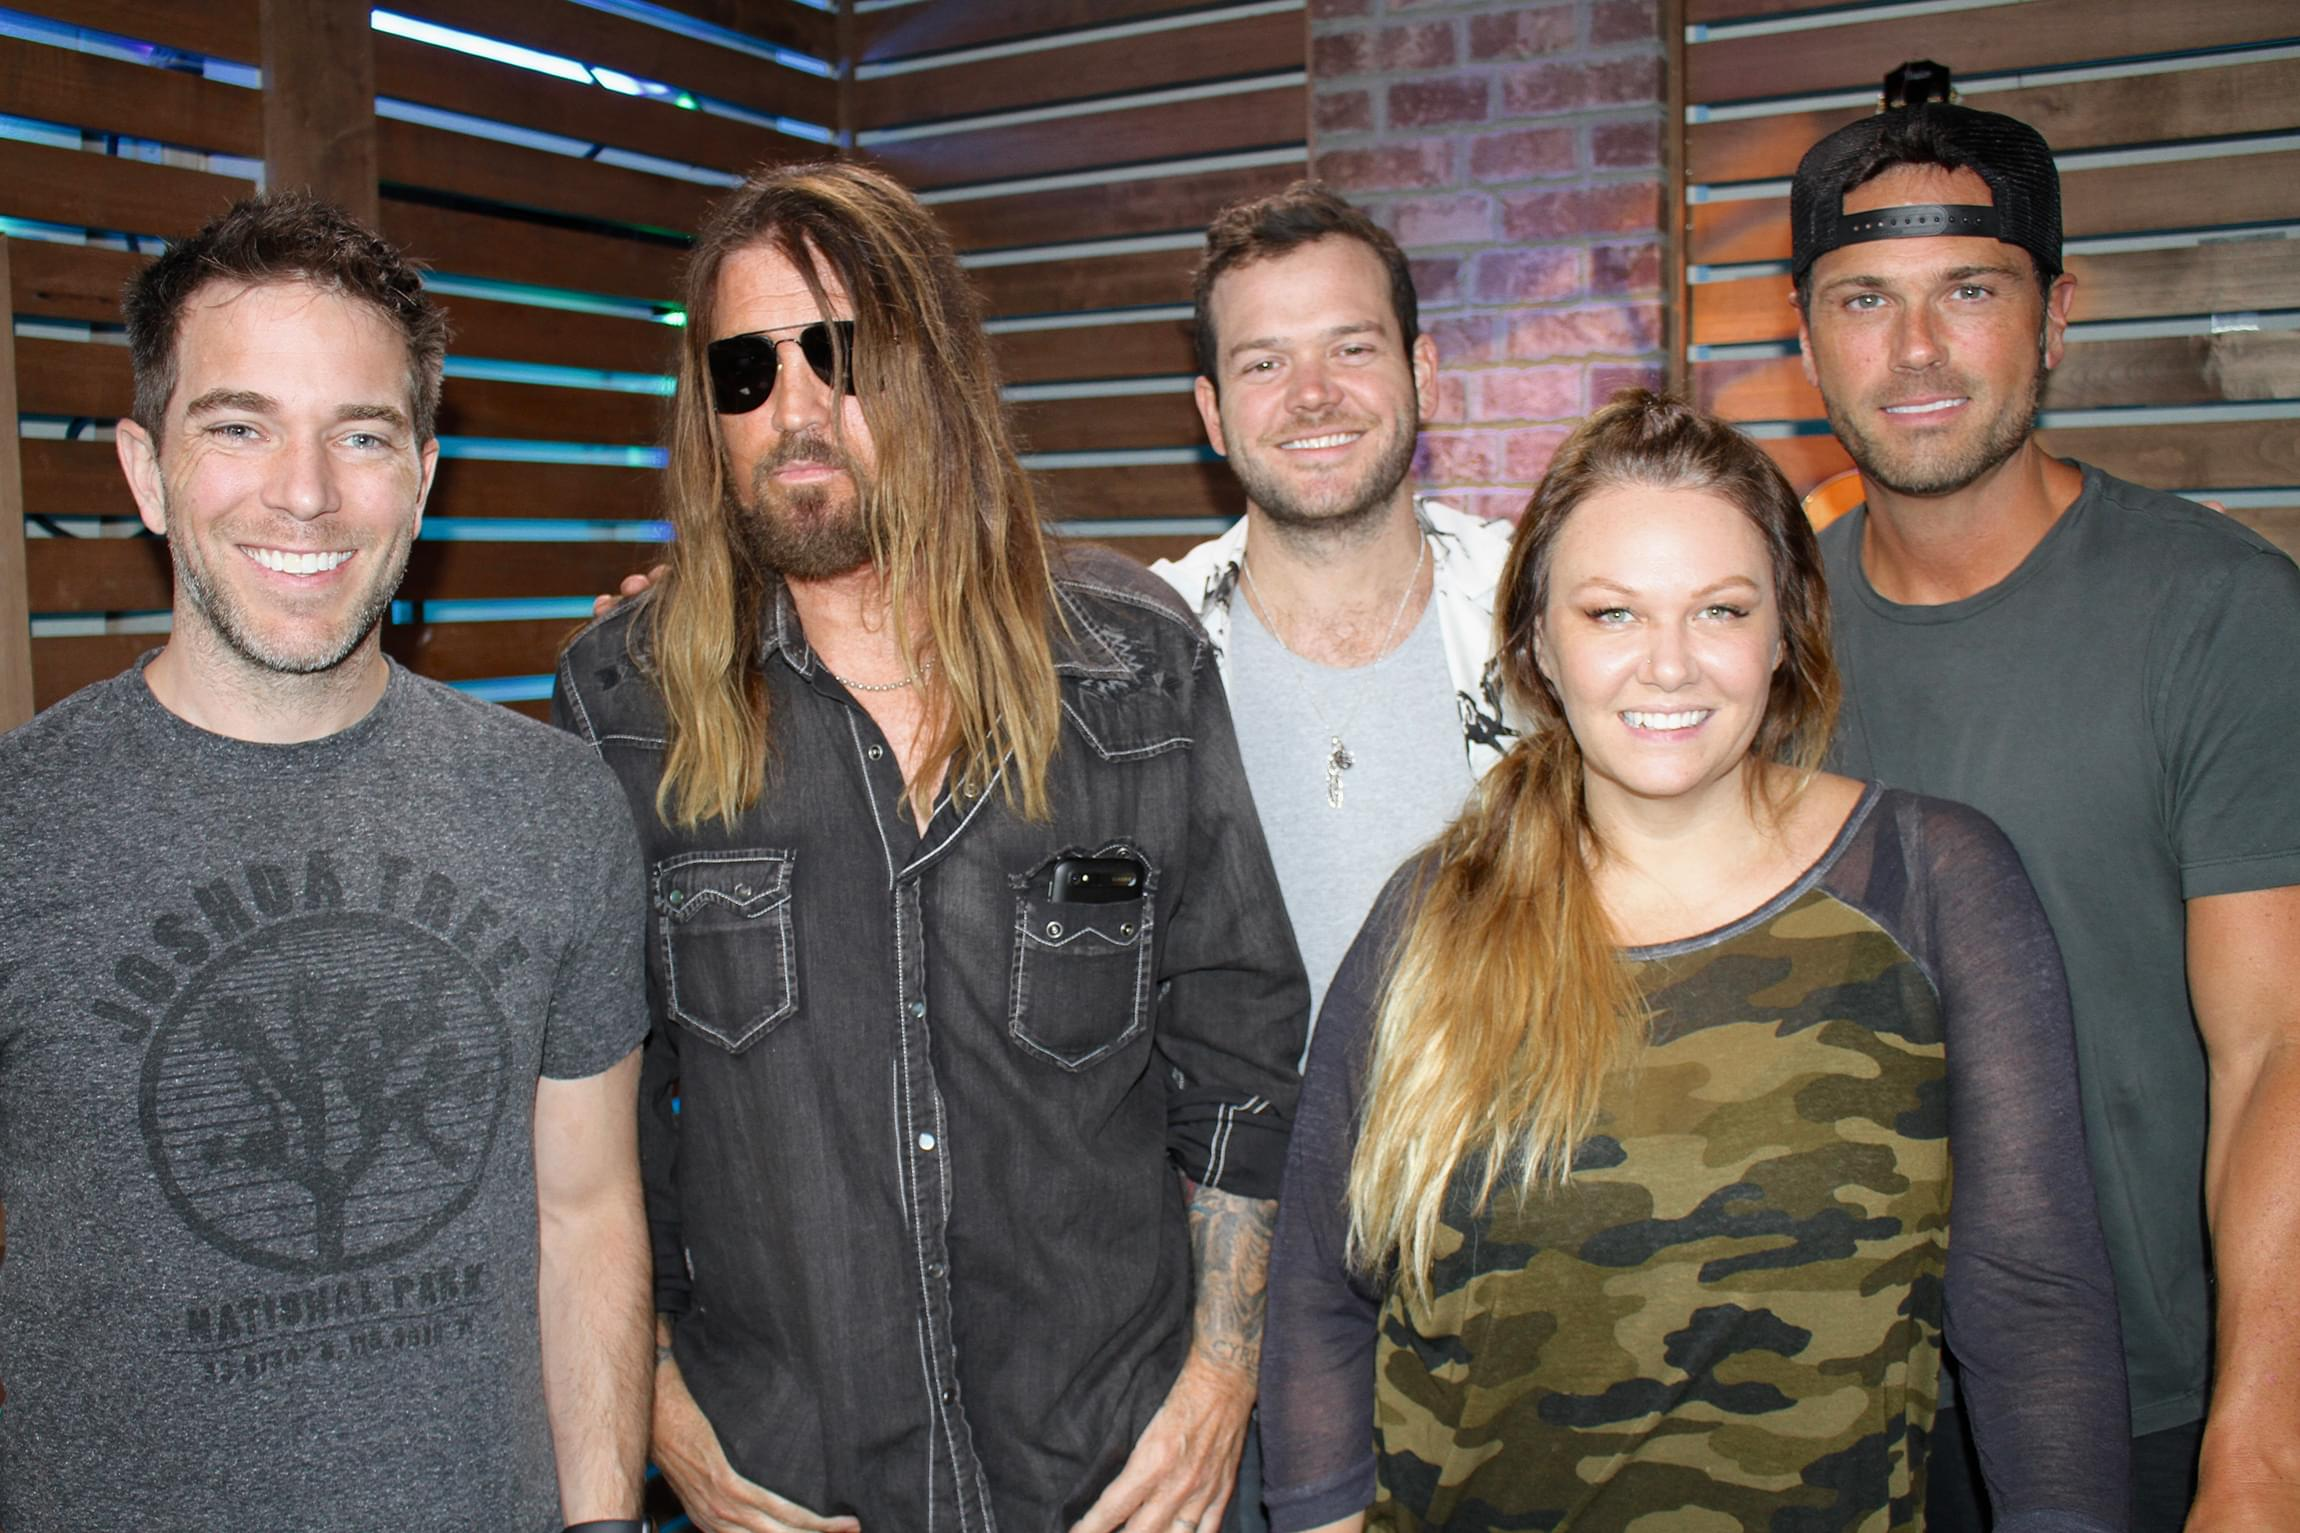 """Billy Ray Cyrus Discusses Spending 18 Weeks at #1 with """"Old Town Road,"""" New Song """"Chevys and Fords"""" with Johnny McGuire, Living in His Truck, & MORE"""